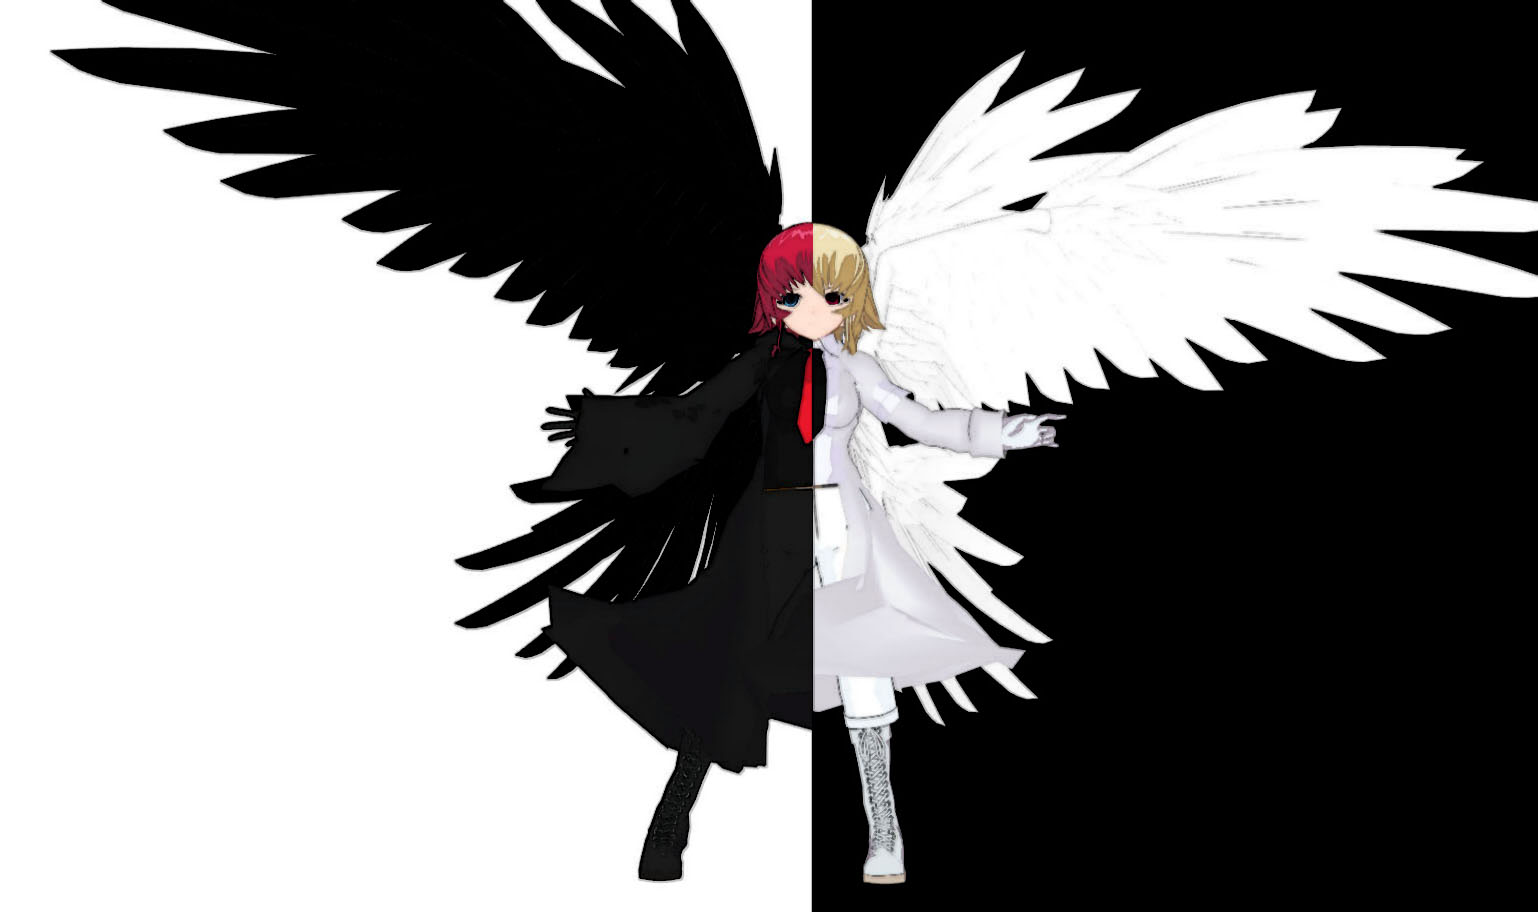 angel of death anime - photo #37